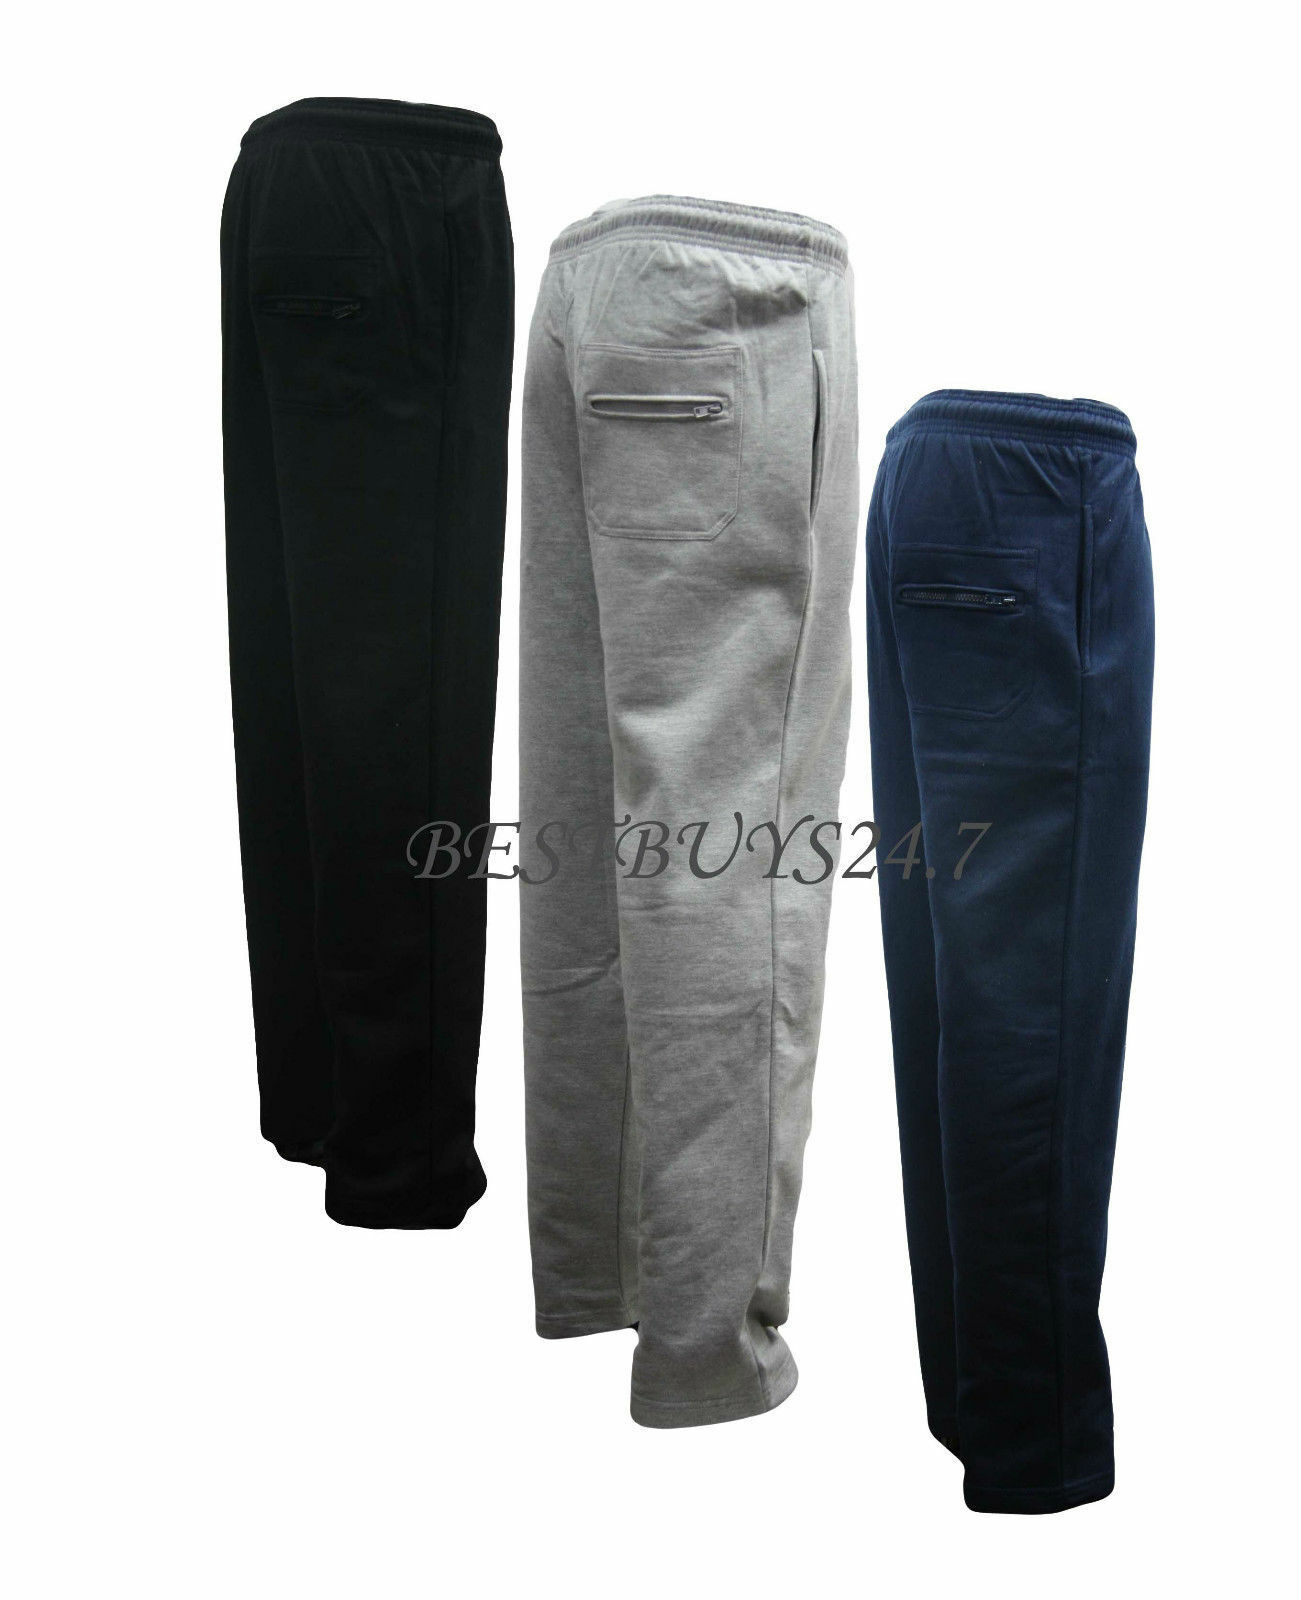 NEW MENS JOGGERS JOGGING TRACKSUIT BOTTOMS TROUSERS PANTS SIZE 2xl to 8xl